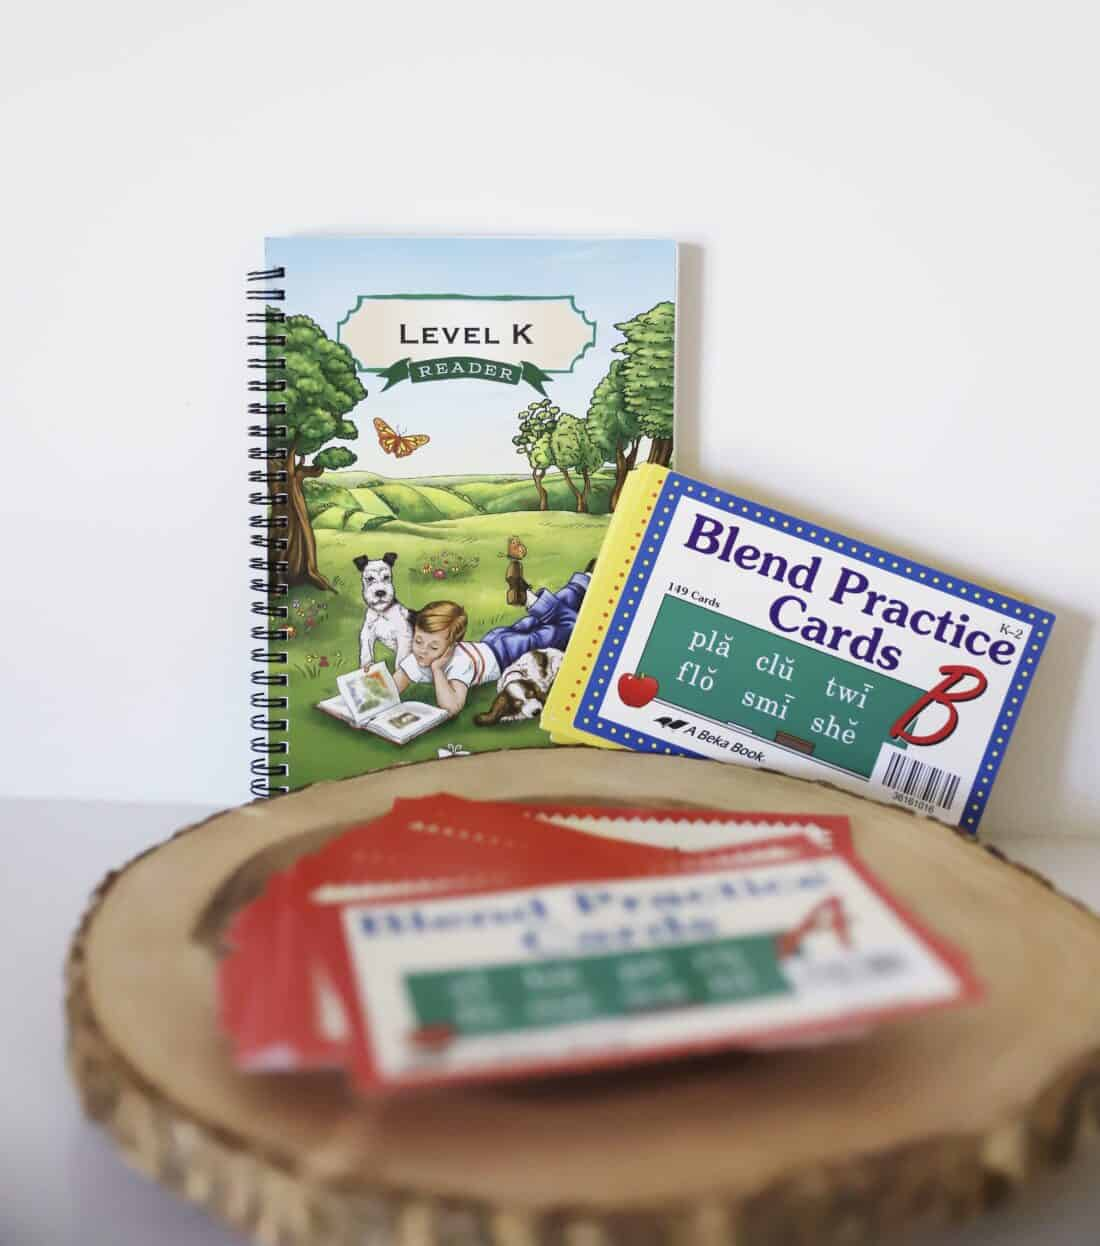 phonics and reading curriculum for kids